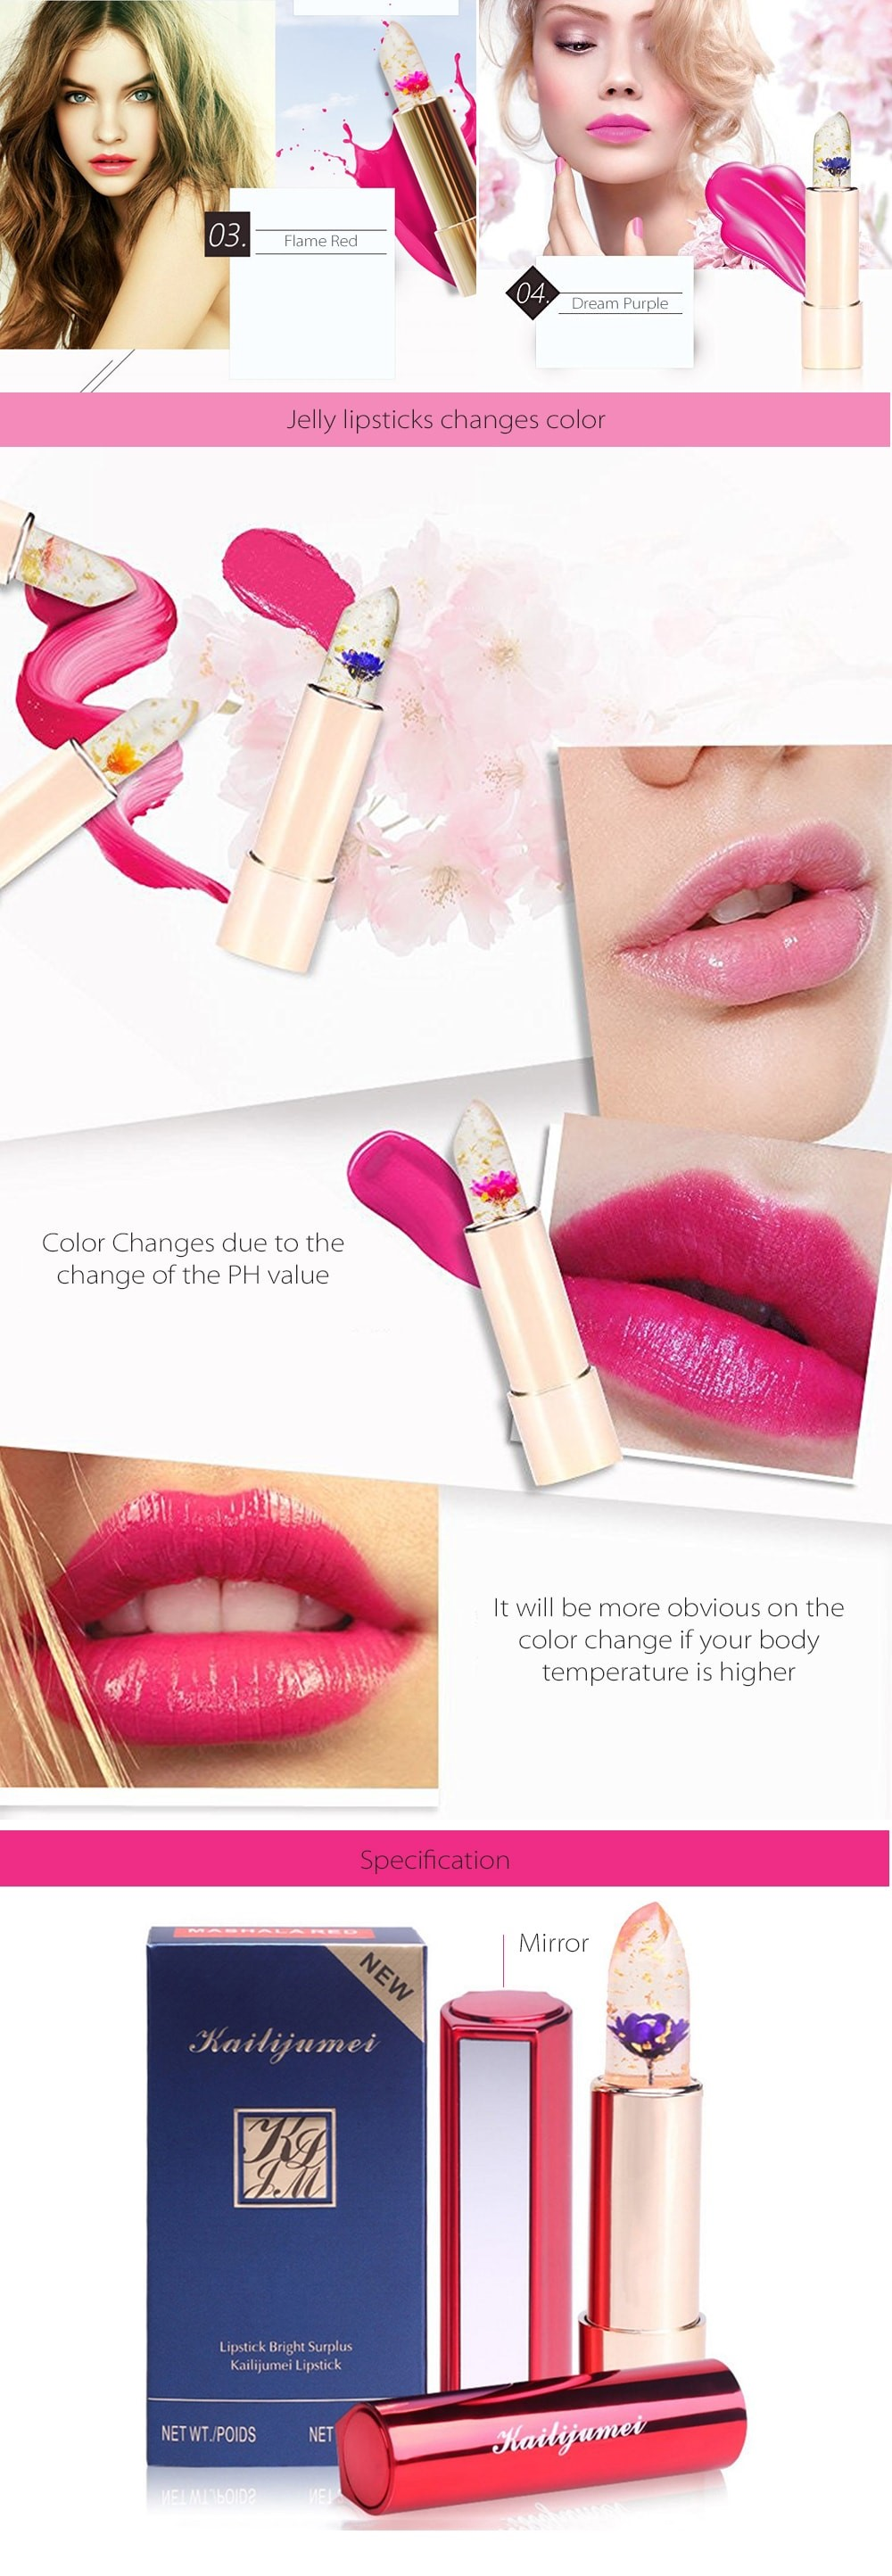 Jelly lipsticks Changes Color According to Your Temperature